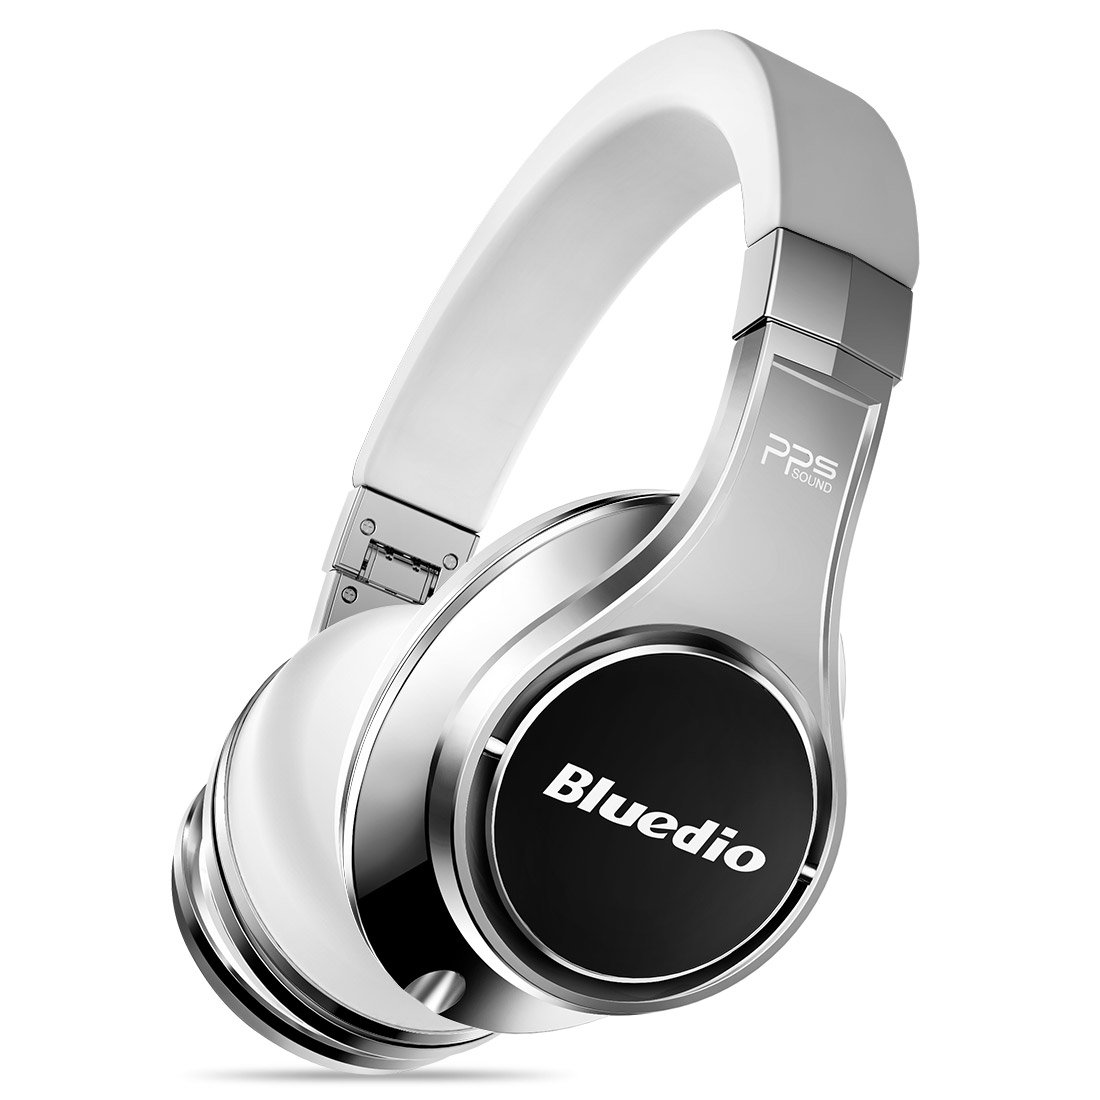 Bluedio U2(UFO) Active Smart Bluetooth Headphones Patented 8 Drivers Speakers Over Ear Wireless Headsets with Voice Control,Dual Cloud Service, Mic for Phones (White-Silver) by Bluedio